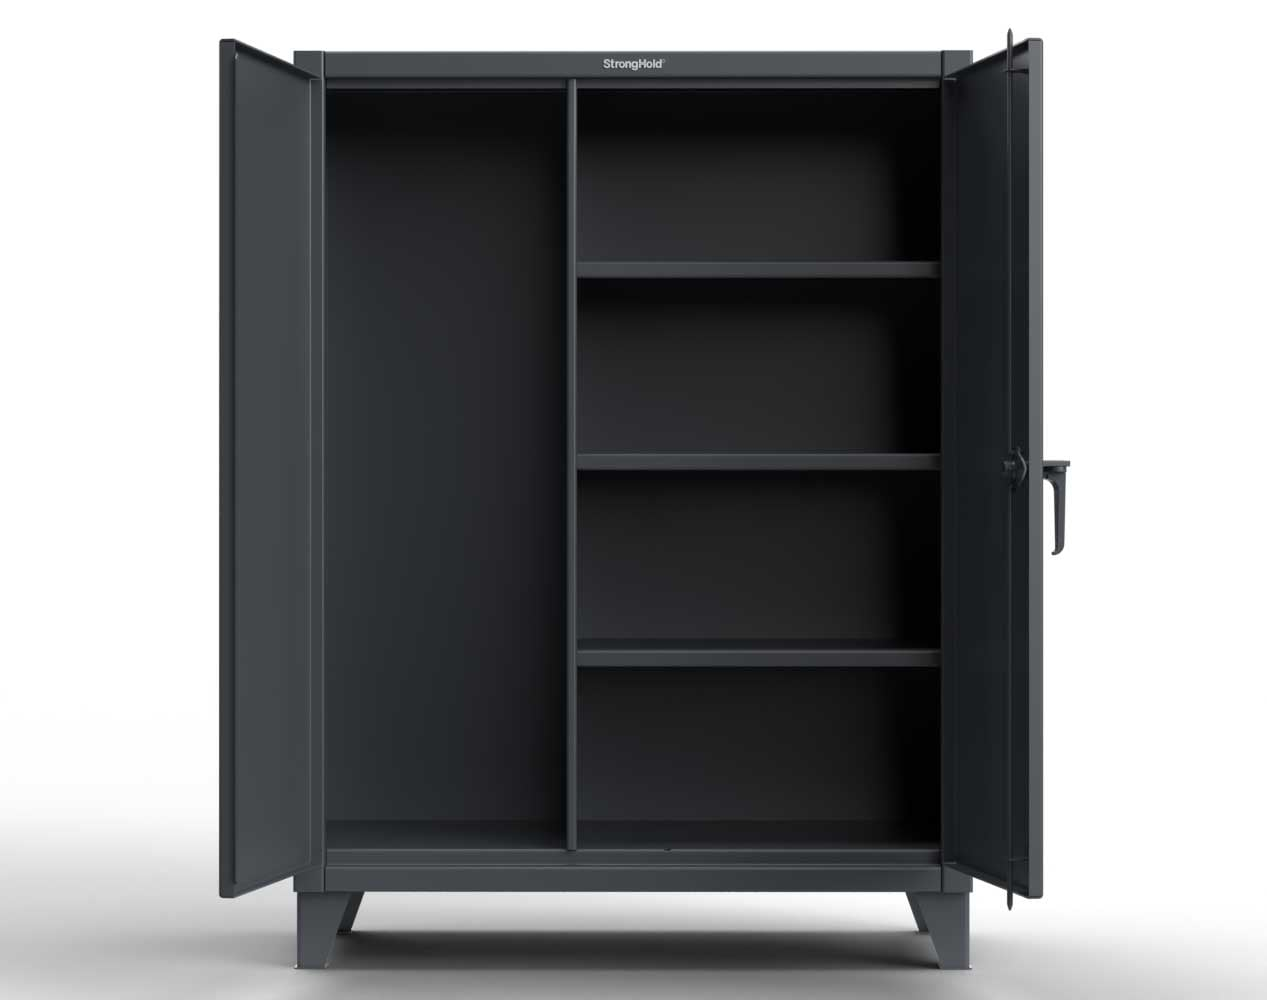 Extreme Duty 12 GA Janitorial Cabinet with 3 Shelves – 48 In. W x 24 In. D x 66 In. H